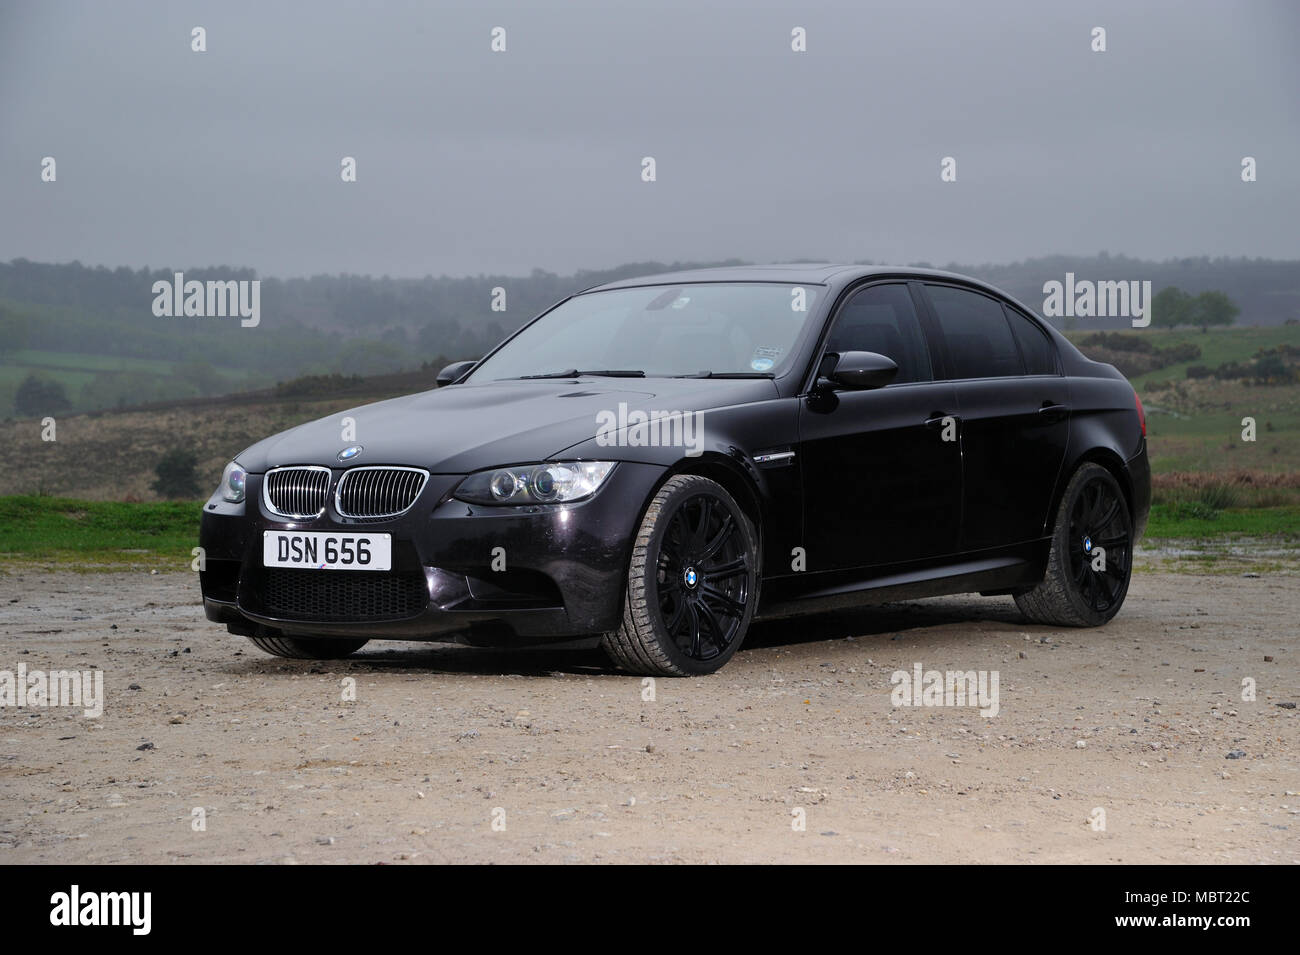 E92 Bmw M3 Sports Saloon Car All Black Murdered Out Look Stock